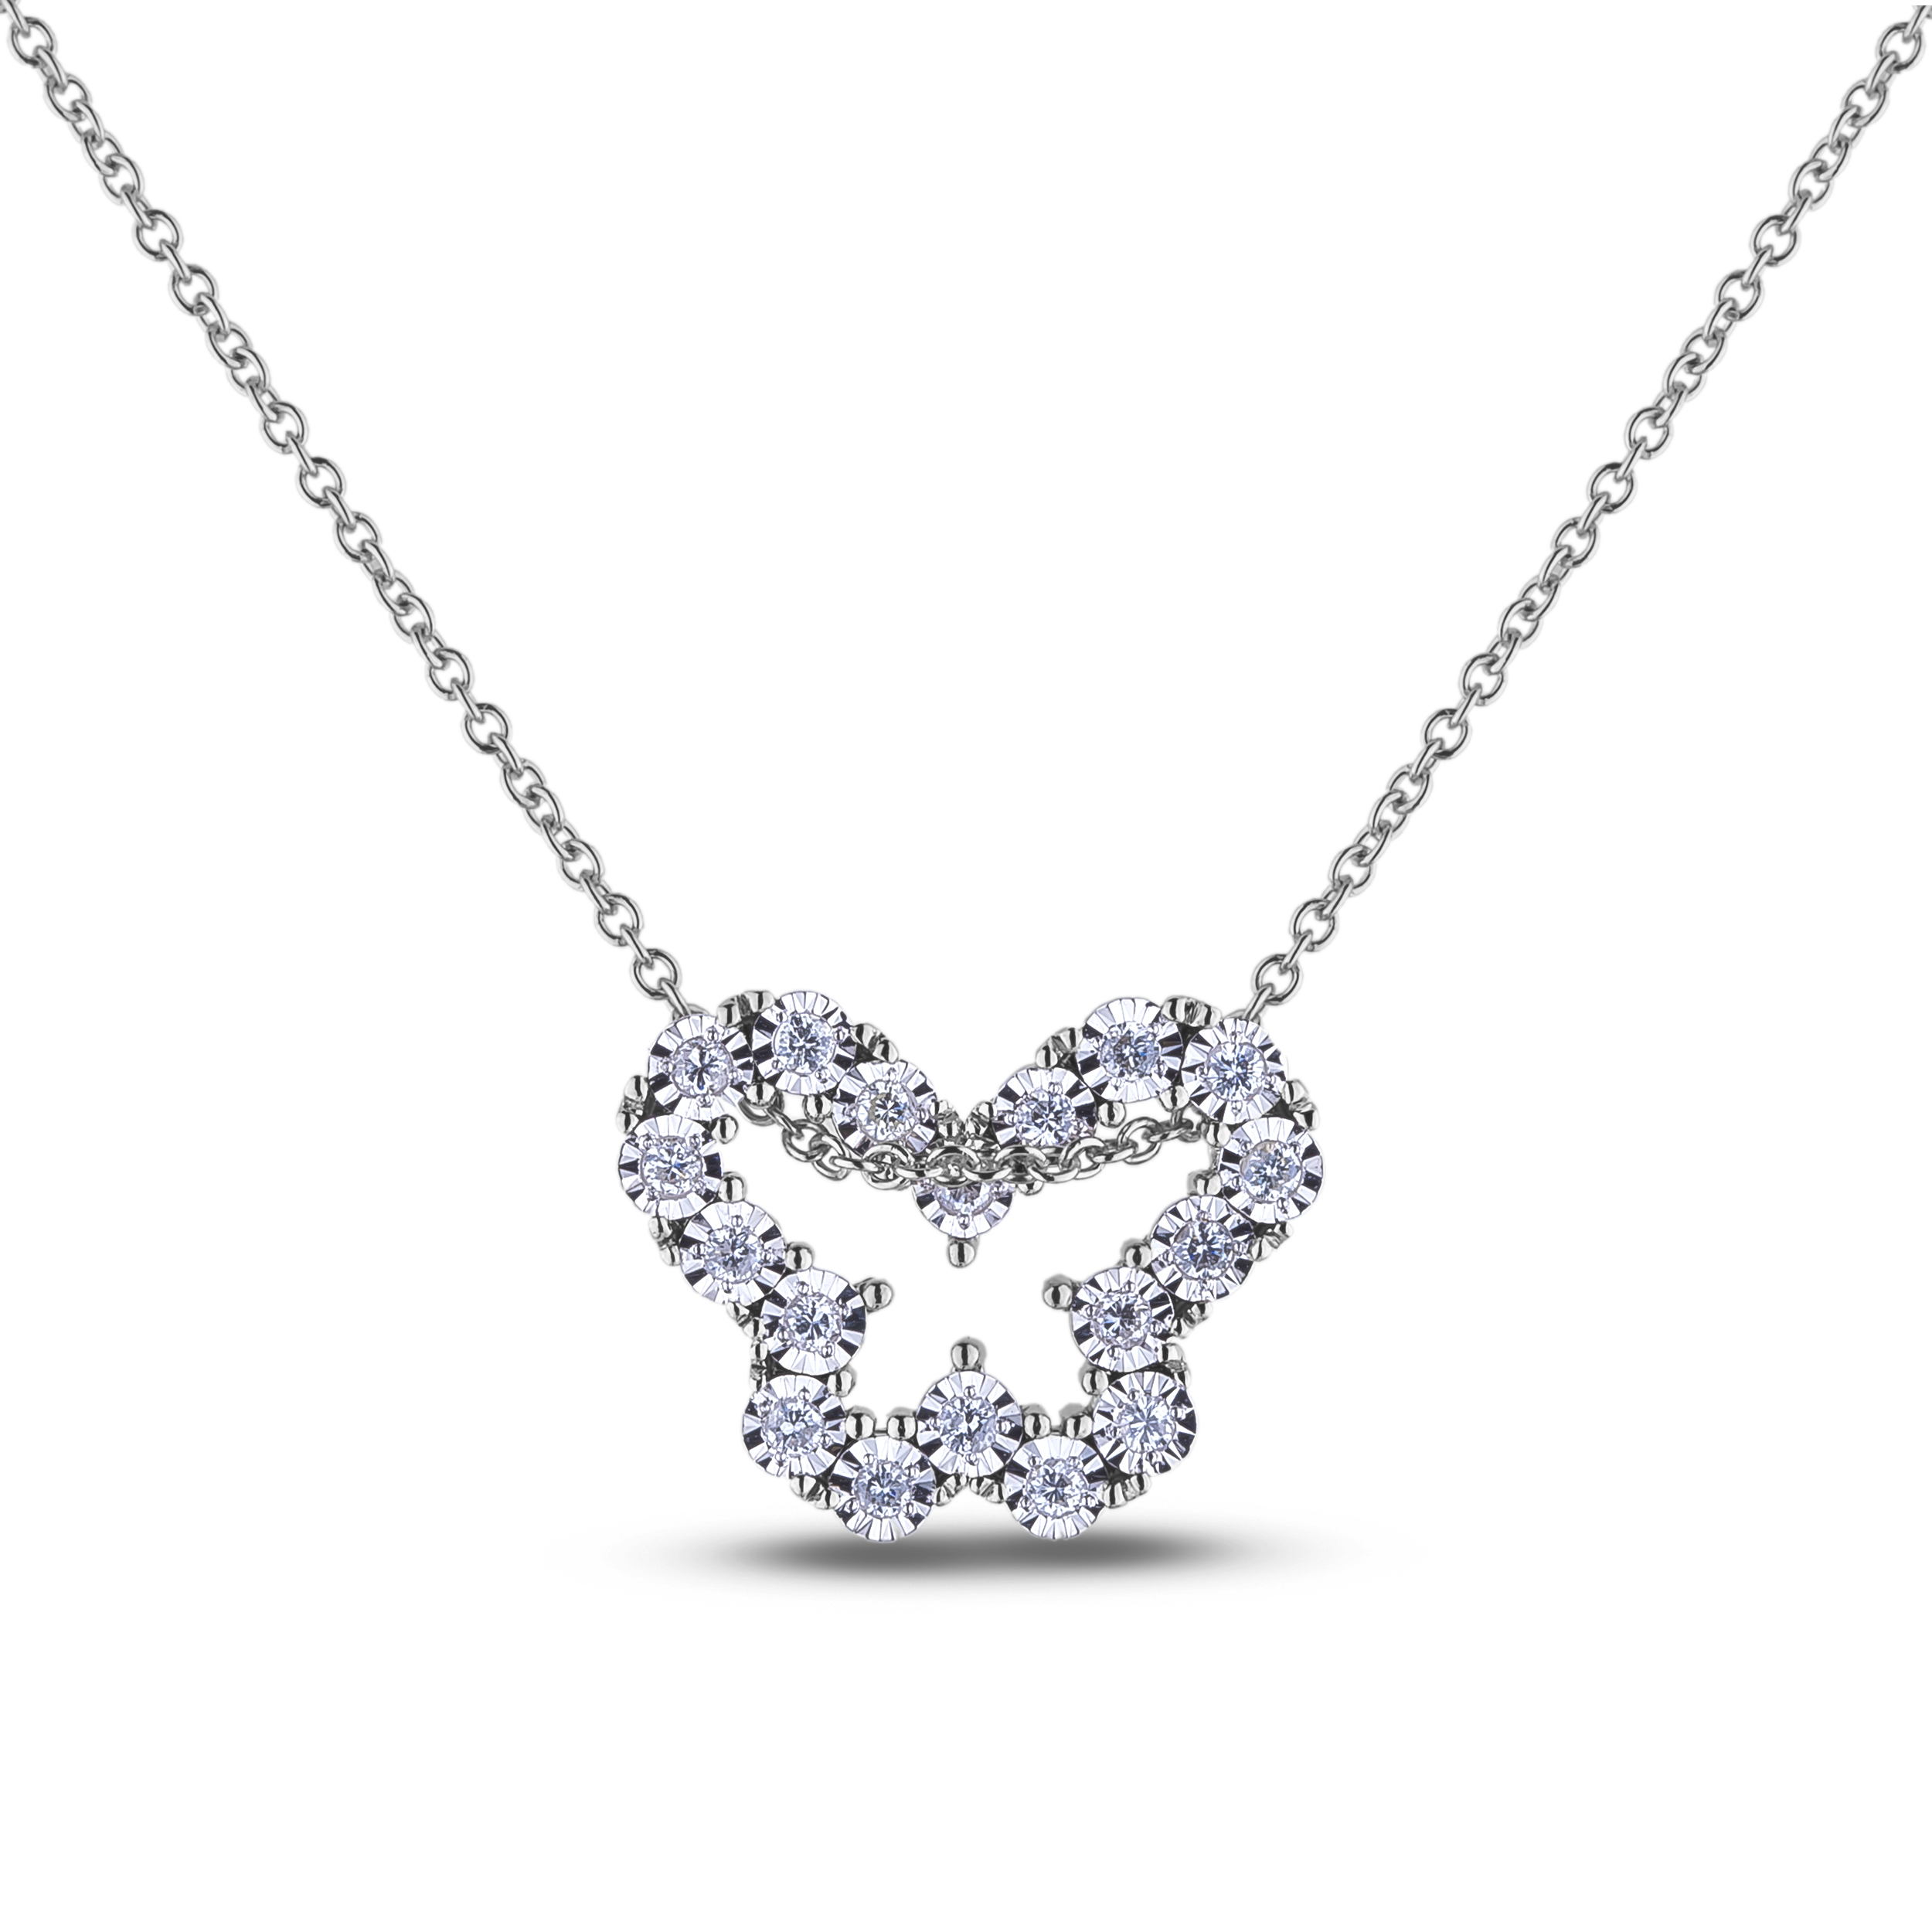 Diamond Pendants JS-AFCP008120 (Pendants)